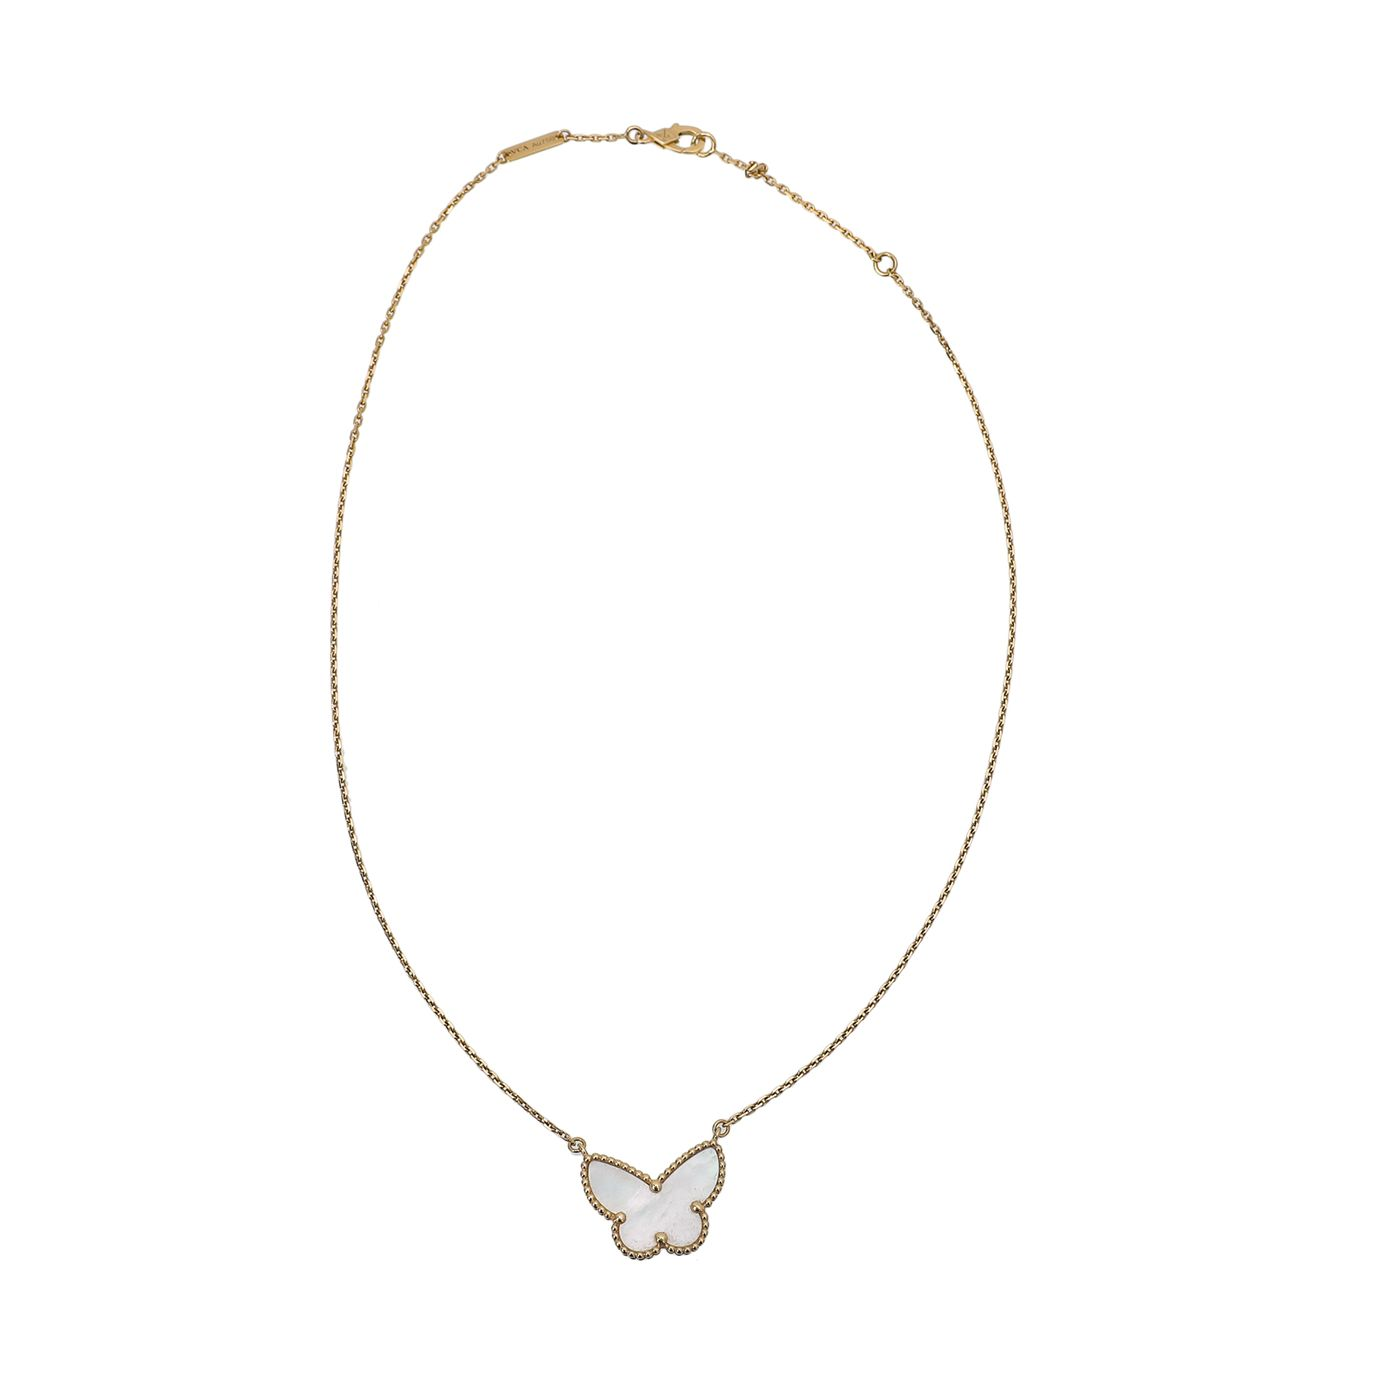 Van Cleef & Arpels 18K Yellow Gold MOP Lucky Alhambra Butterfly Pendant Necklace